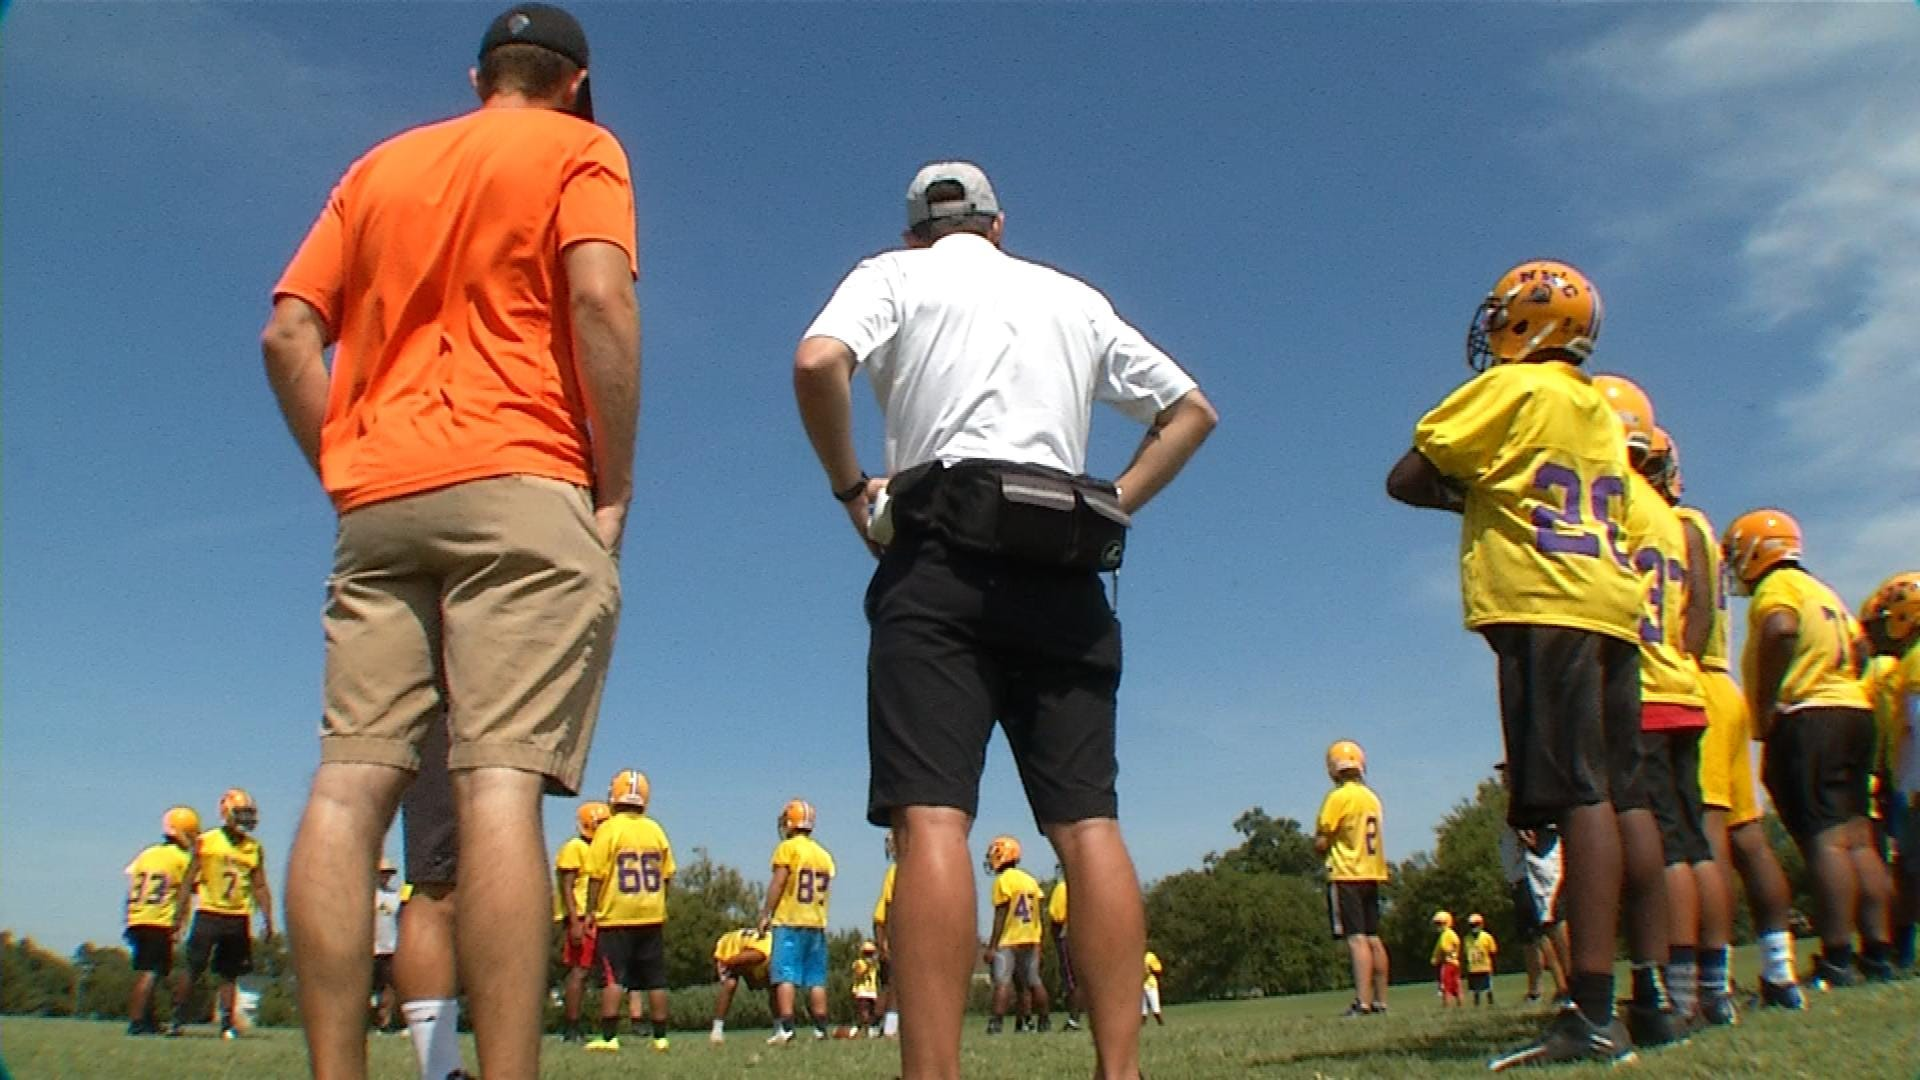 NFL Partners With OKC Schools To Reduce Sports Injuries